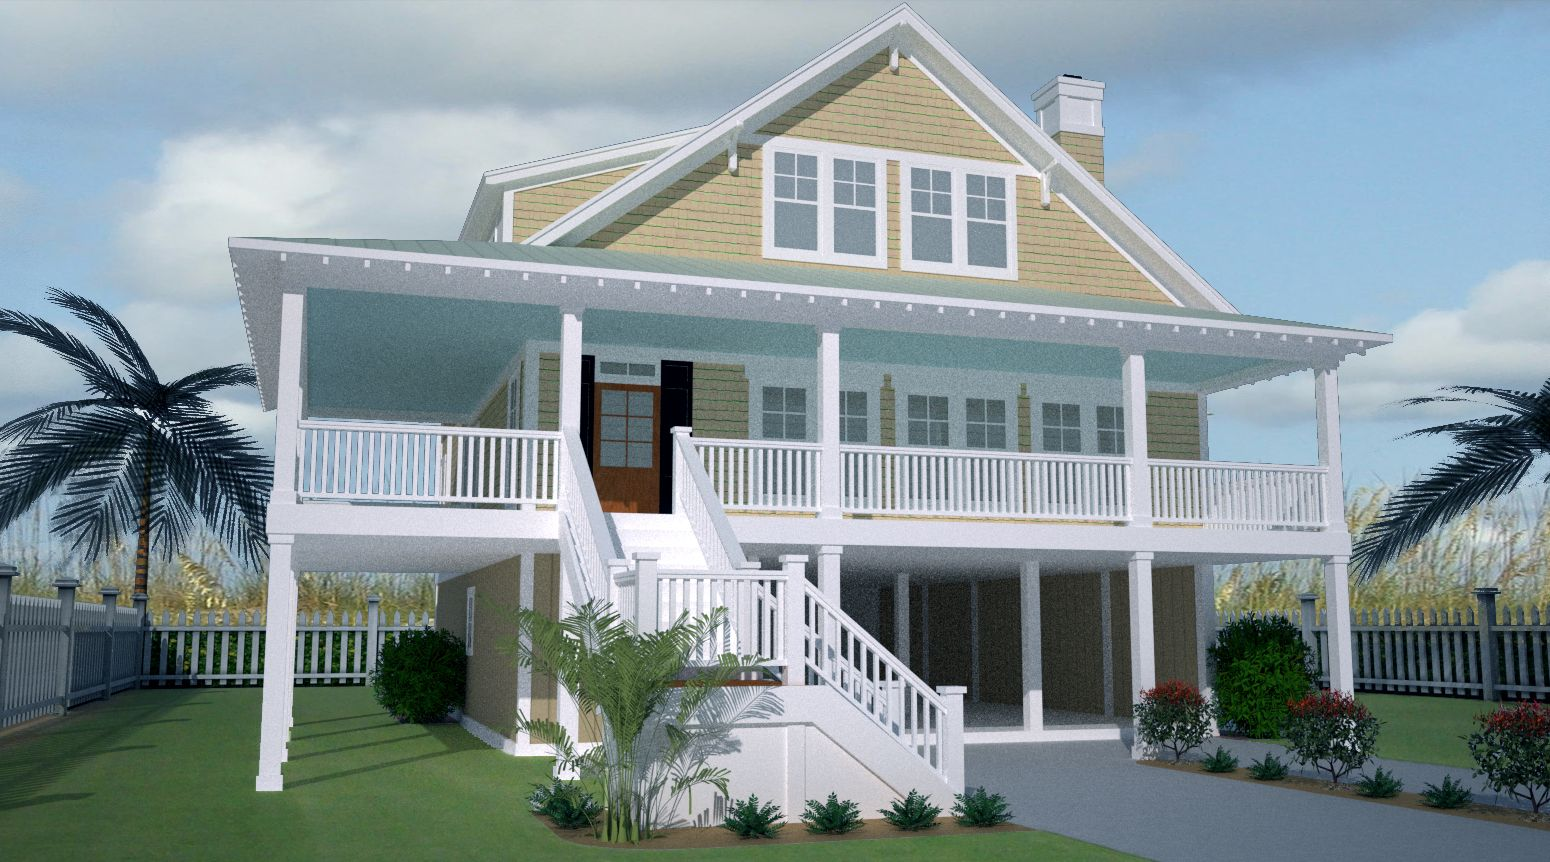 Plan 15056nc Low Country Home With Wraparound Porch Coastal House Plans Low Country Homes Beach House Plans